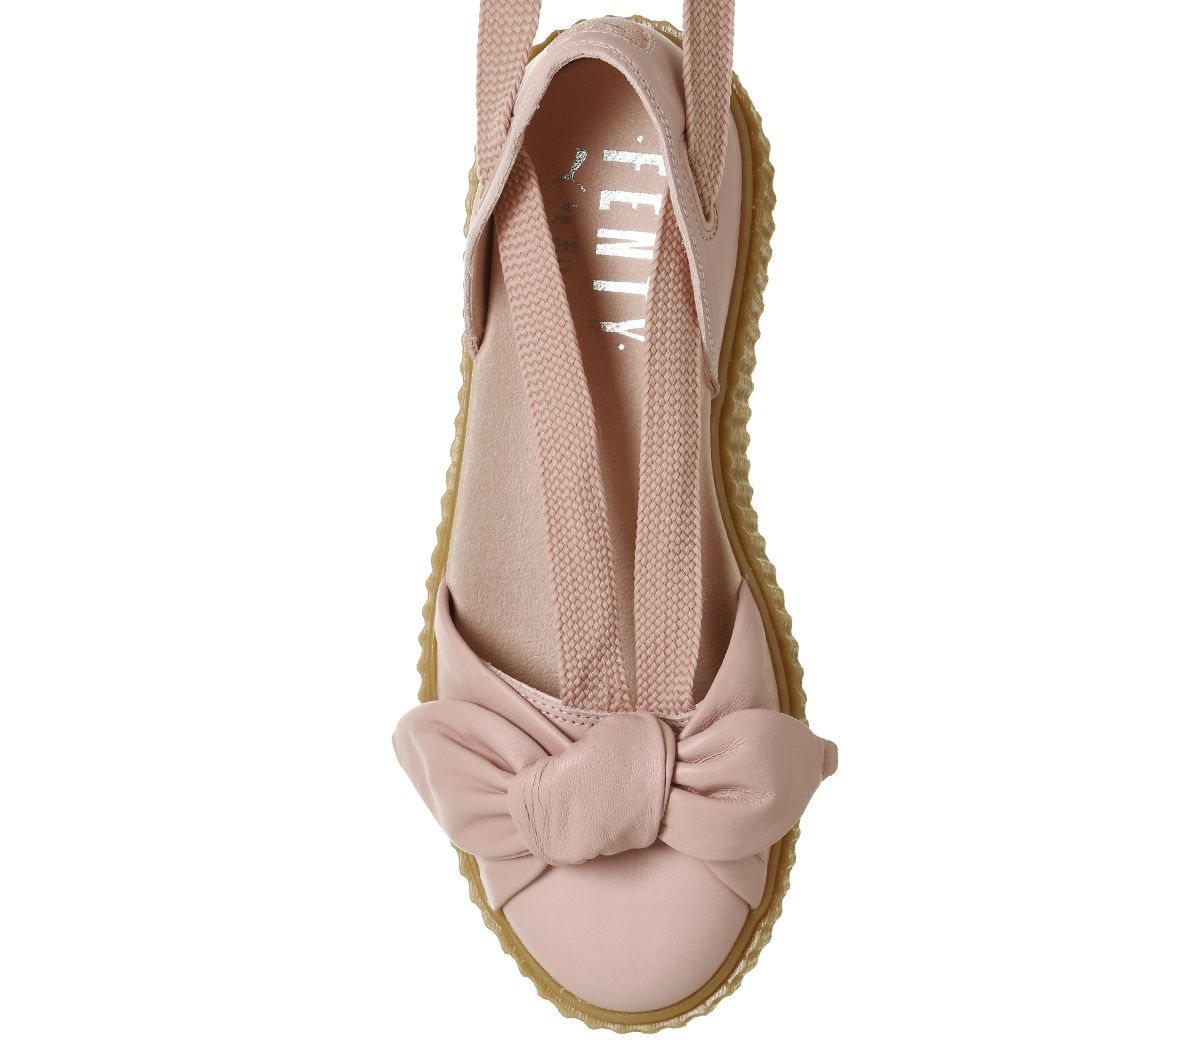 Womens-Puma-Creeper-Ballet-Lace-Pink-Fenty-Sandals thumbnail 11